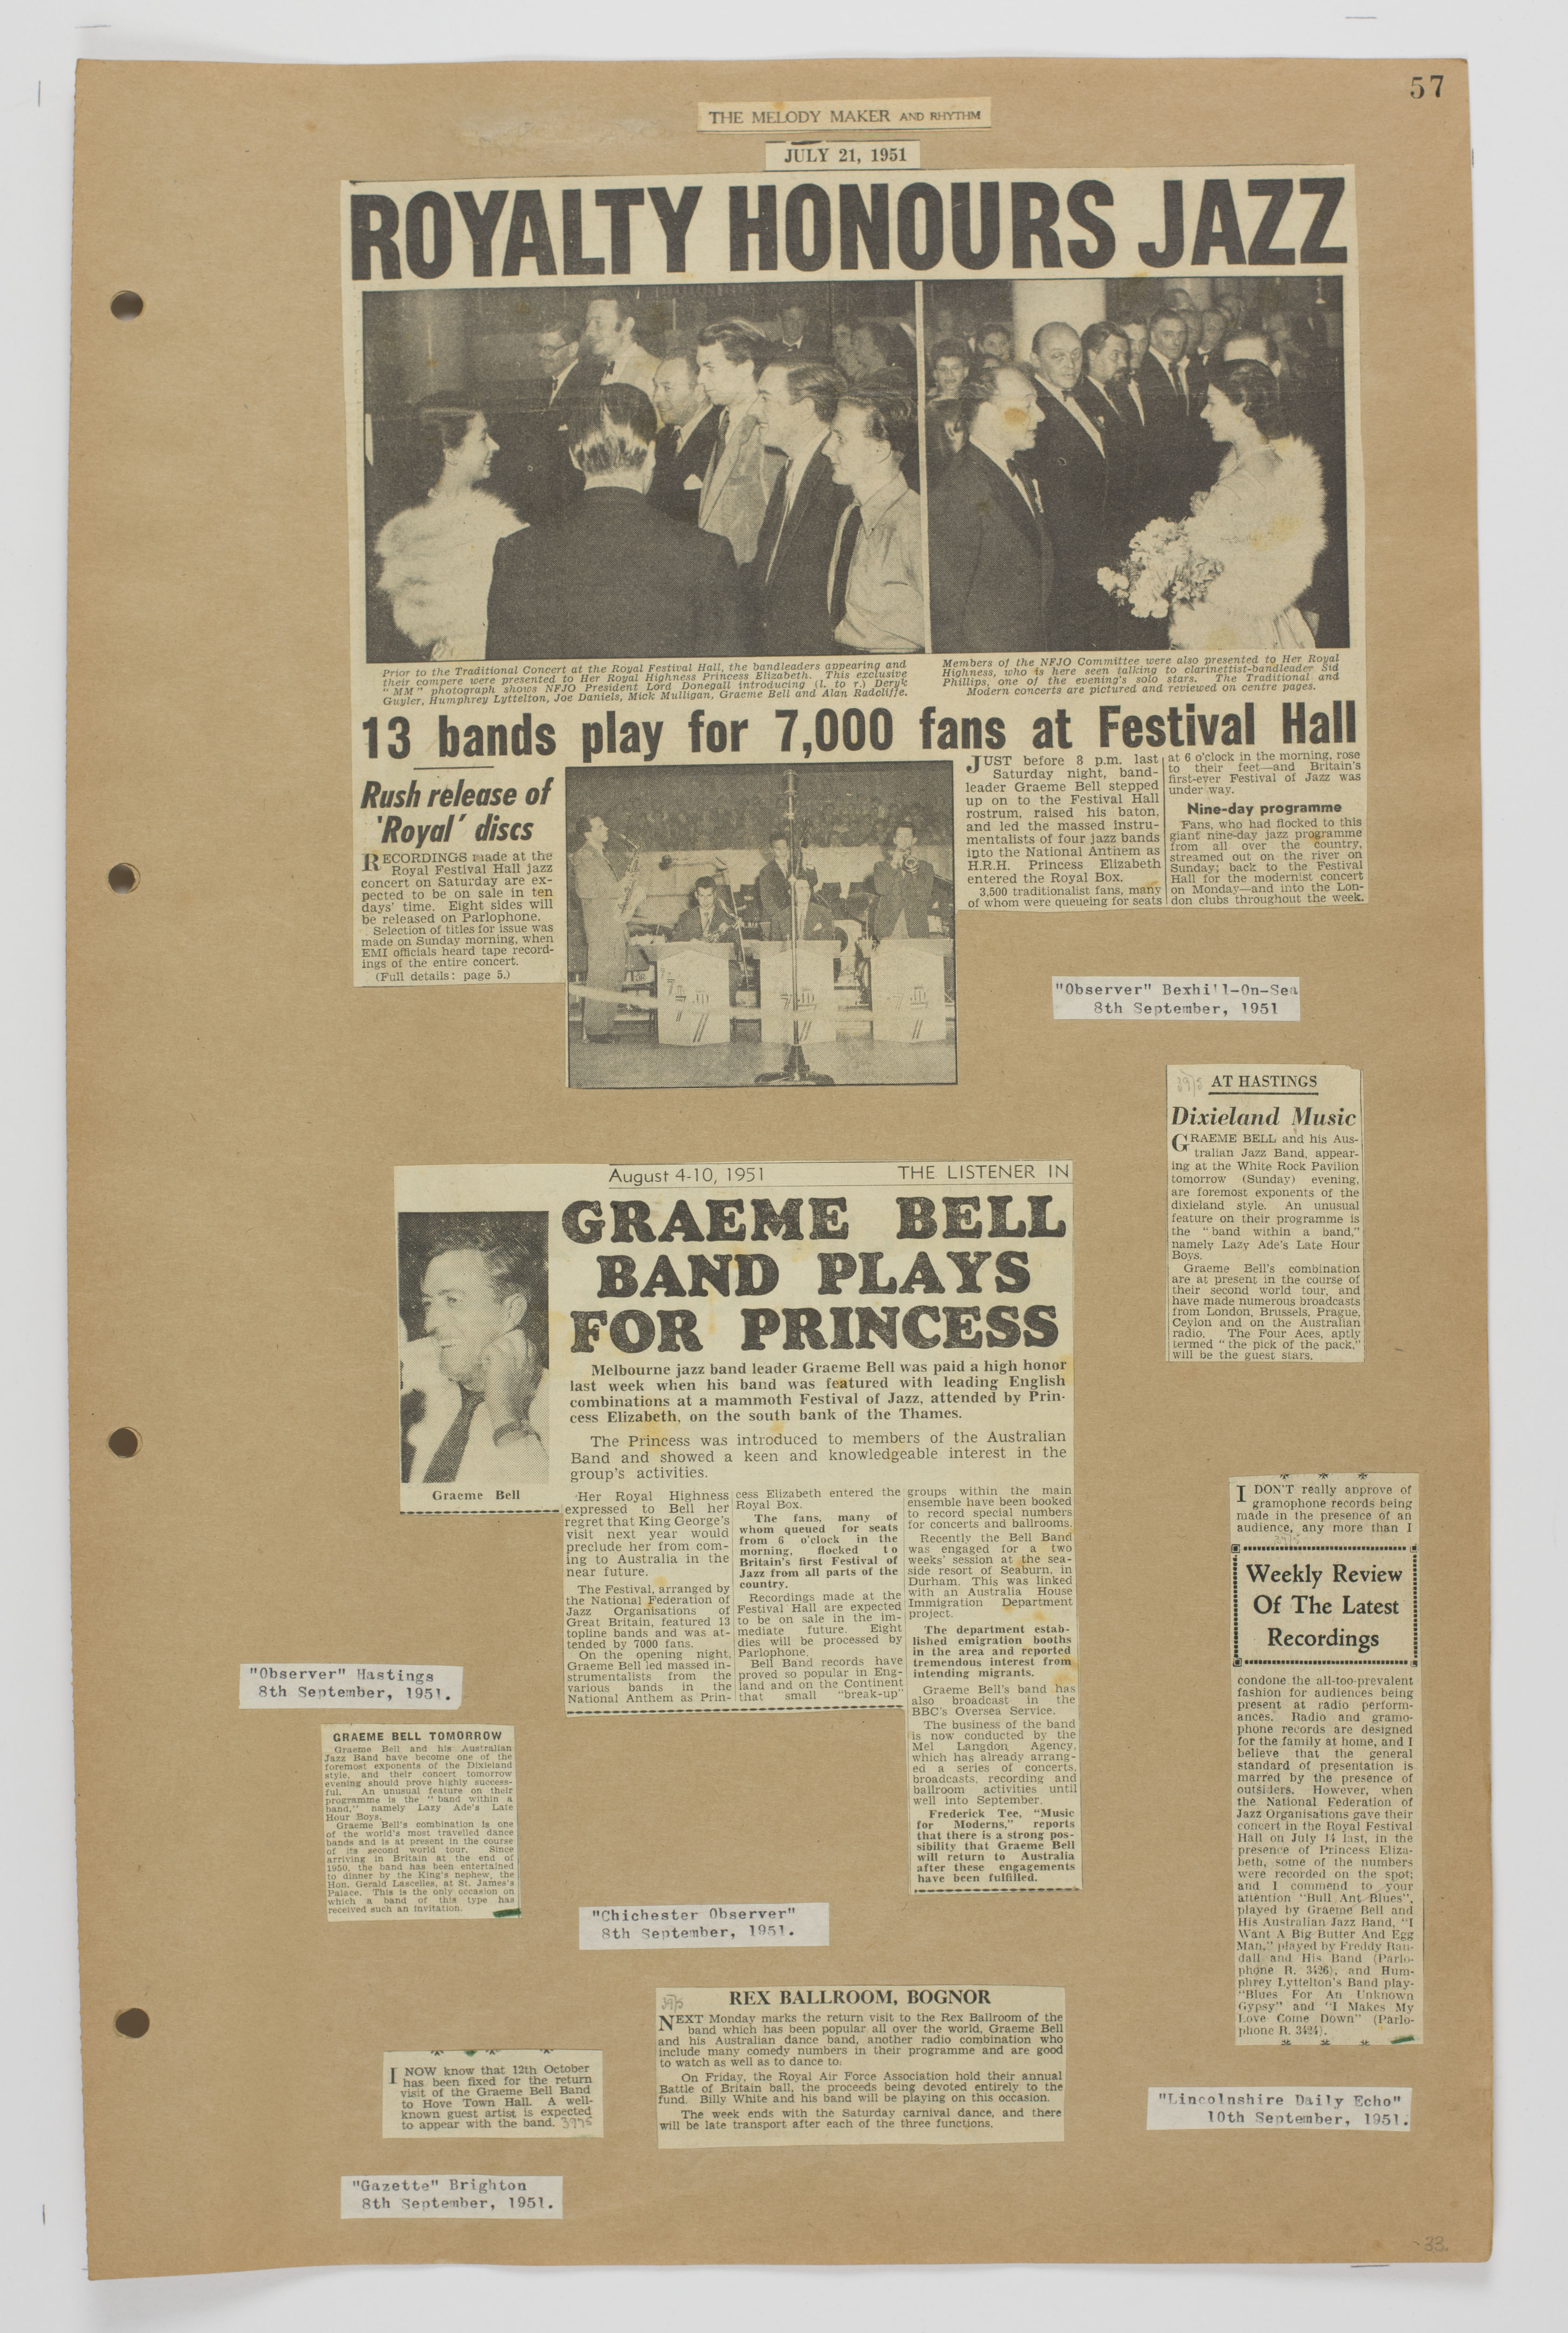 A page from Volume 2 of the Graeme Bell scrapbook collection.